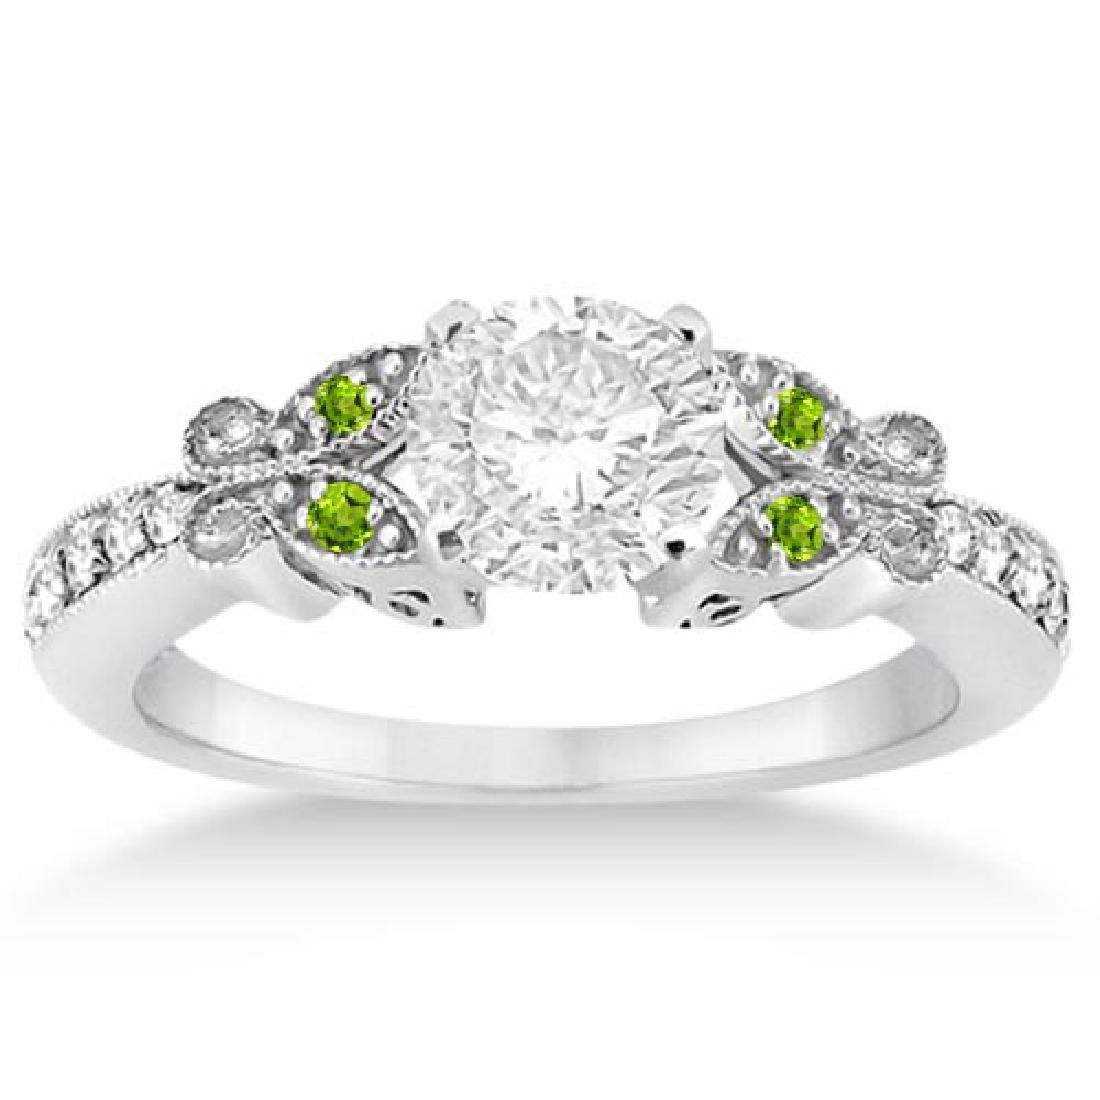 Butterfly Diamond and Peridot Engagement Ring 14k White